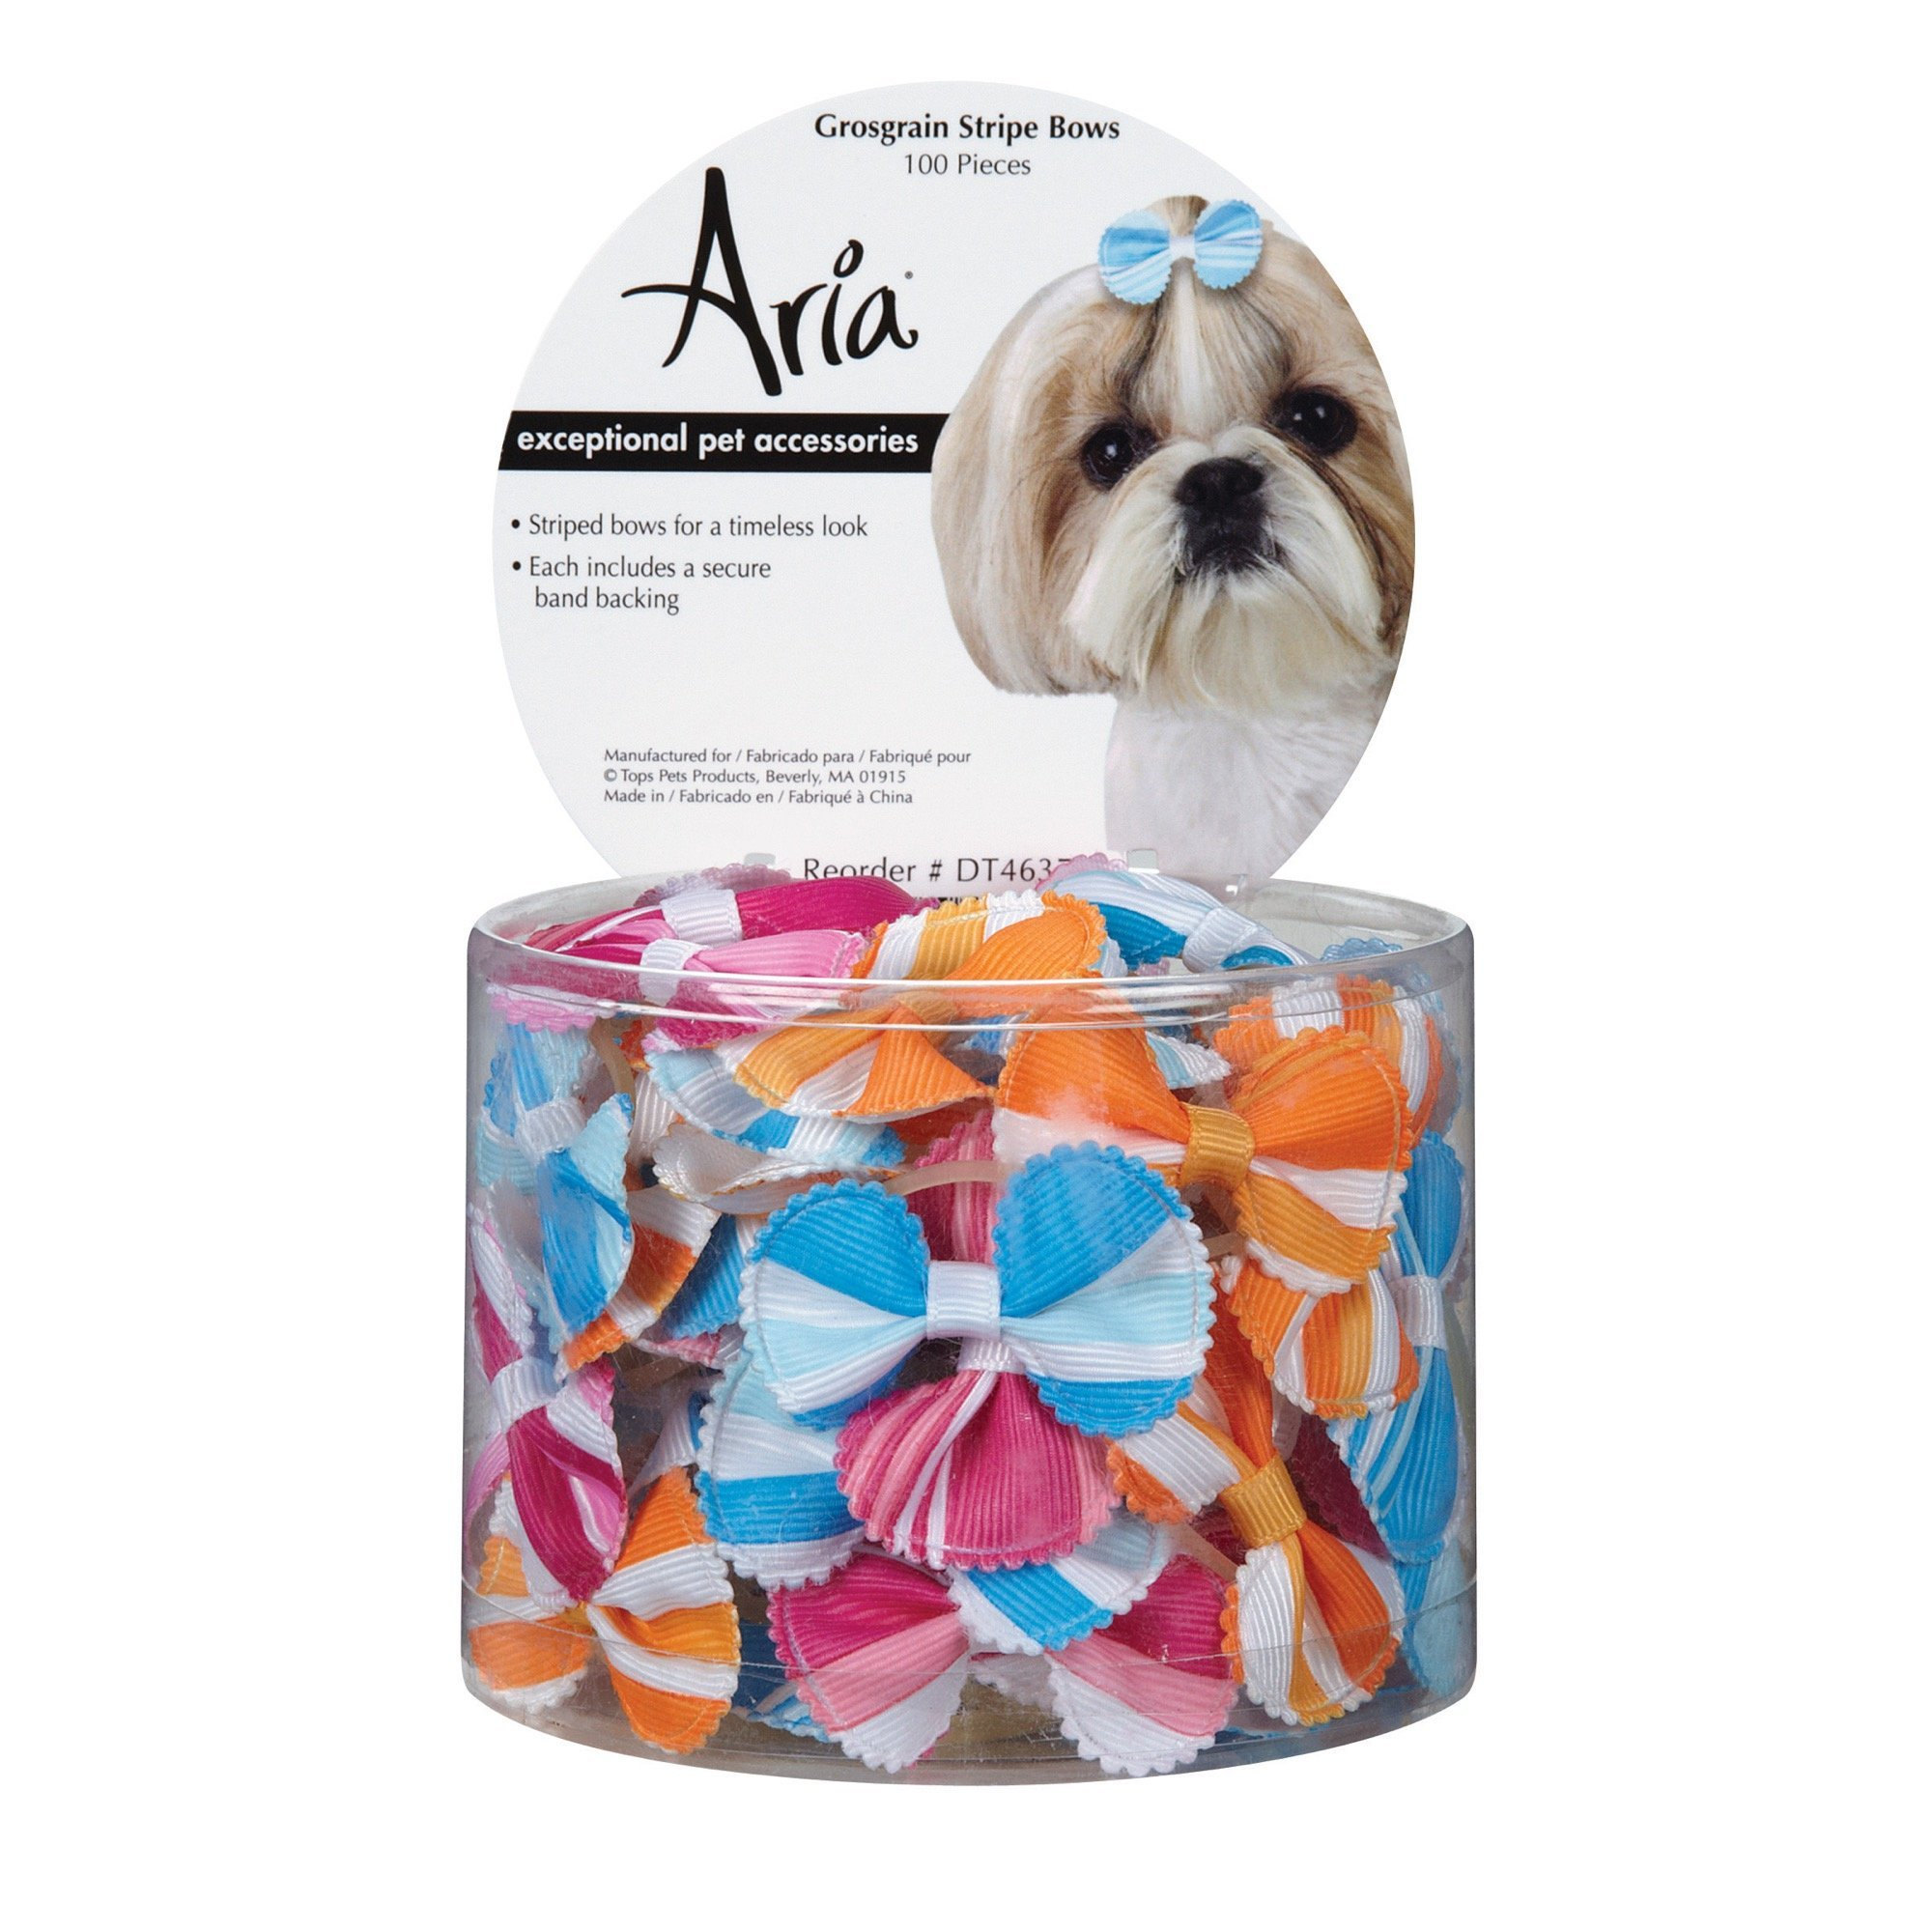 Aria Grosgrain Stripe Bows for Dogs, 100-Piece Canisters by Aria